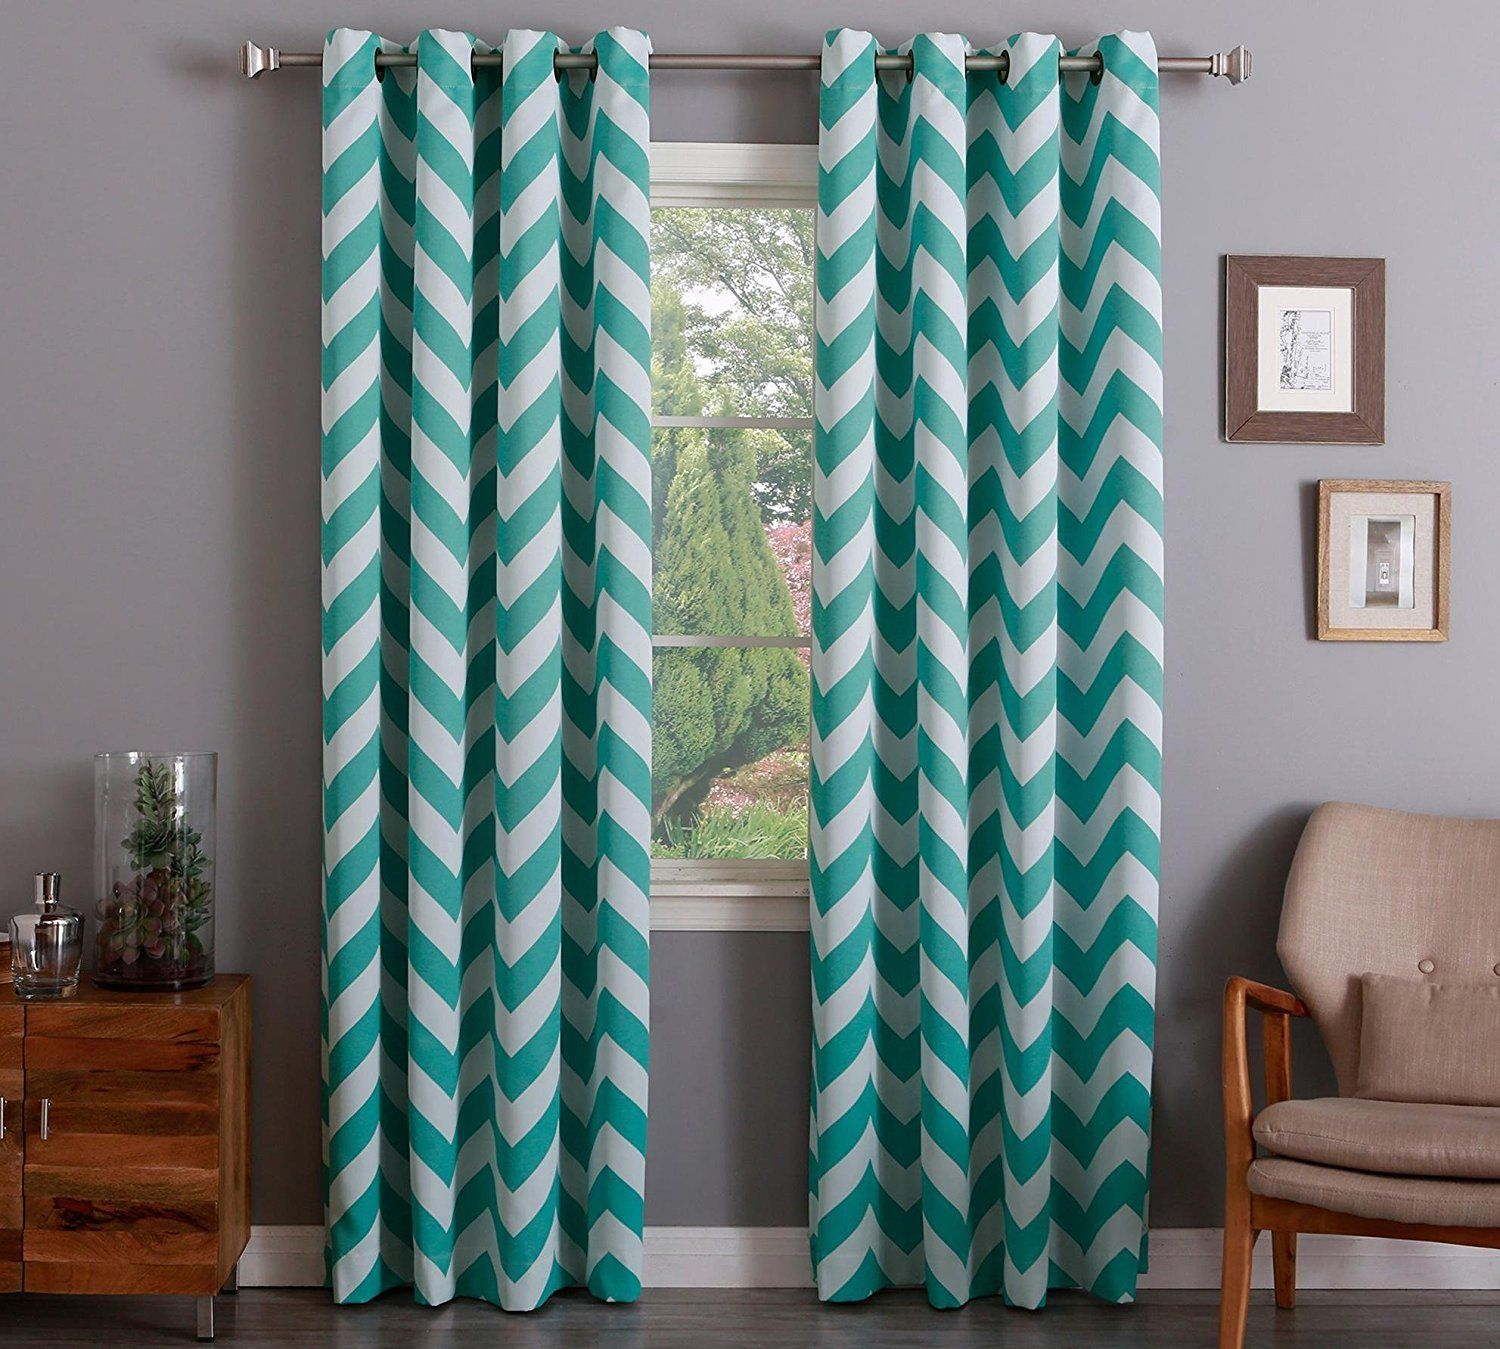 "Chevron 100% Thermal Blackout Grommet Curtain Panel 84"" x 52"" - Turquoise Blue"